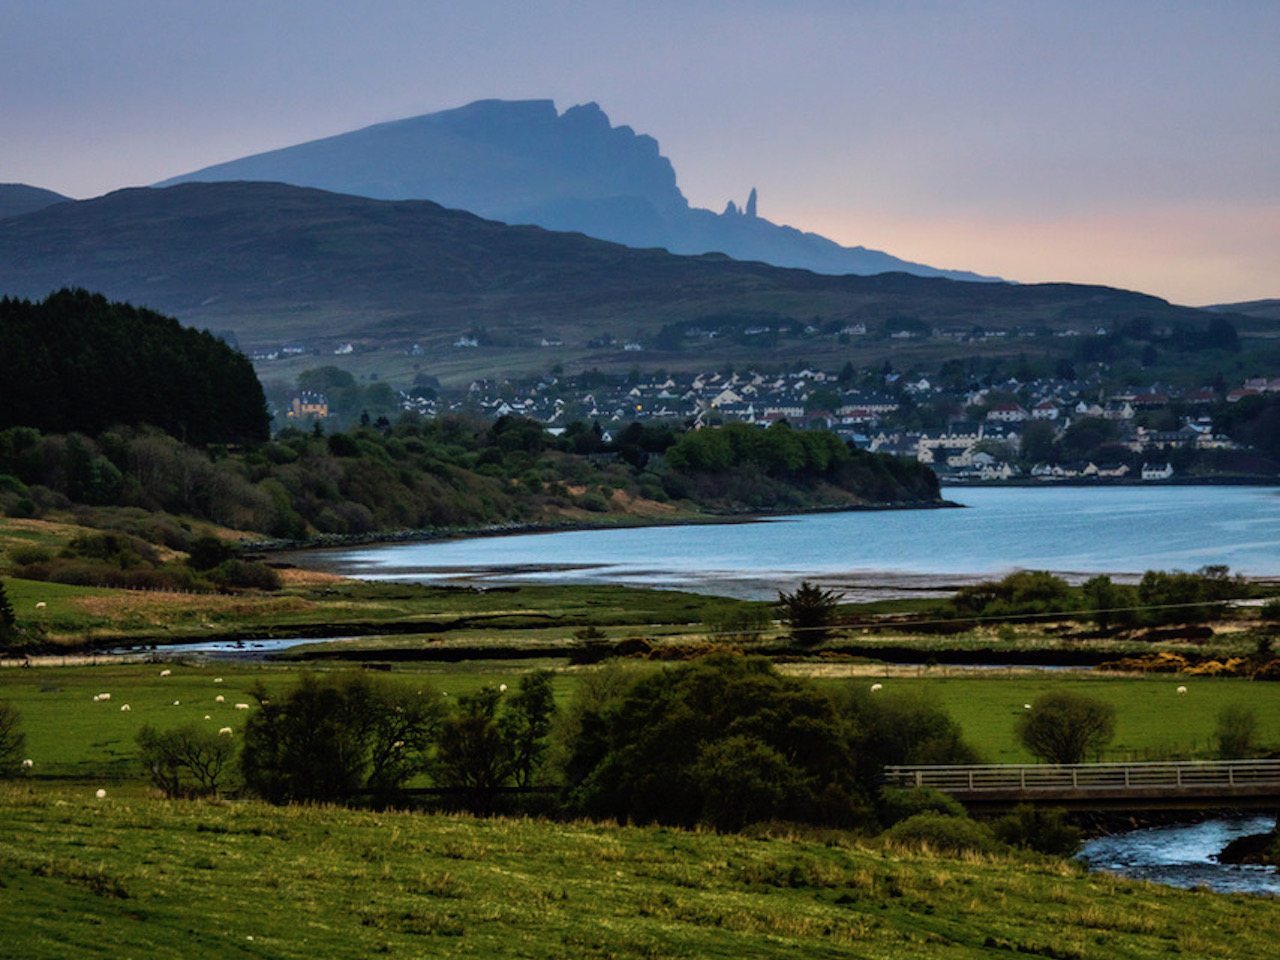 View across theTrotternish Peninsula overlooking the Sound of Raasay, Isle of Skye, Scotland, UK, with the town of Portree and The Old Man Of Storr in the distance.